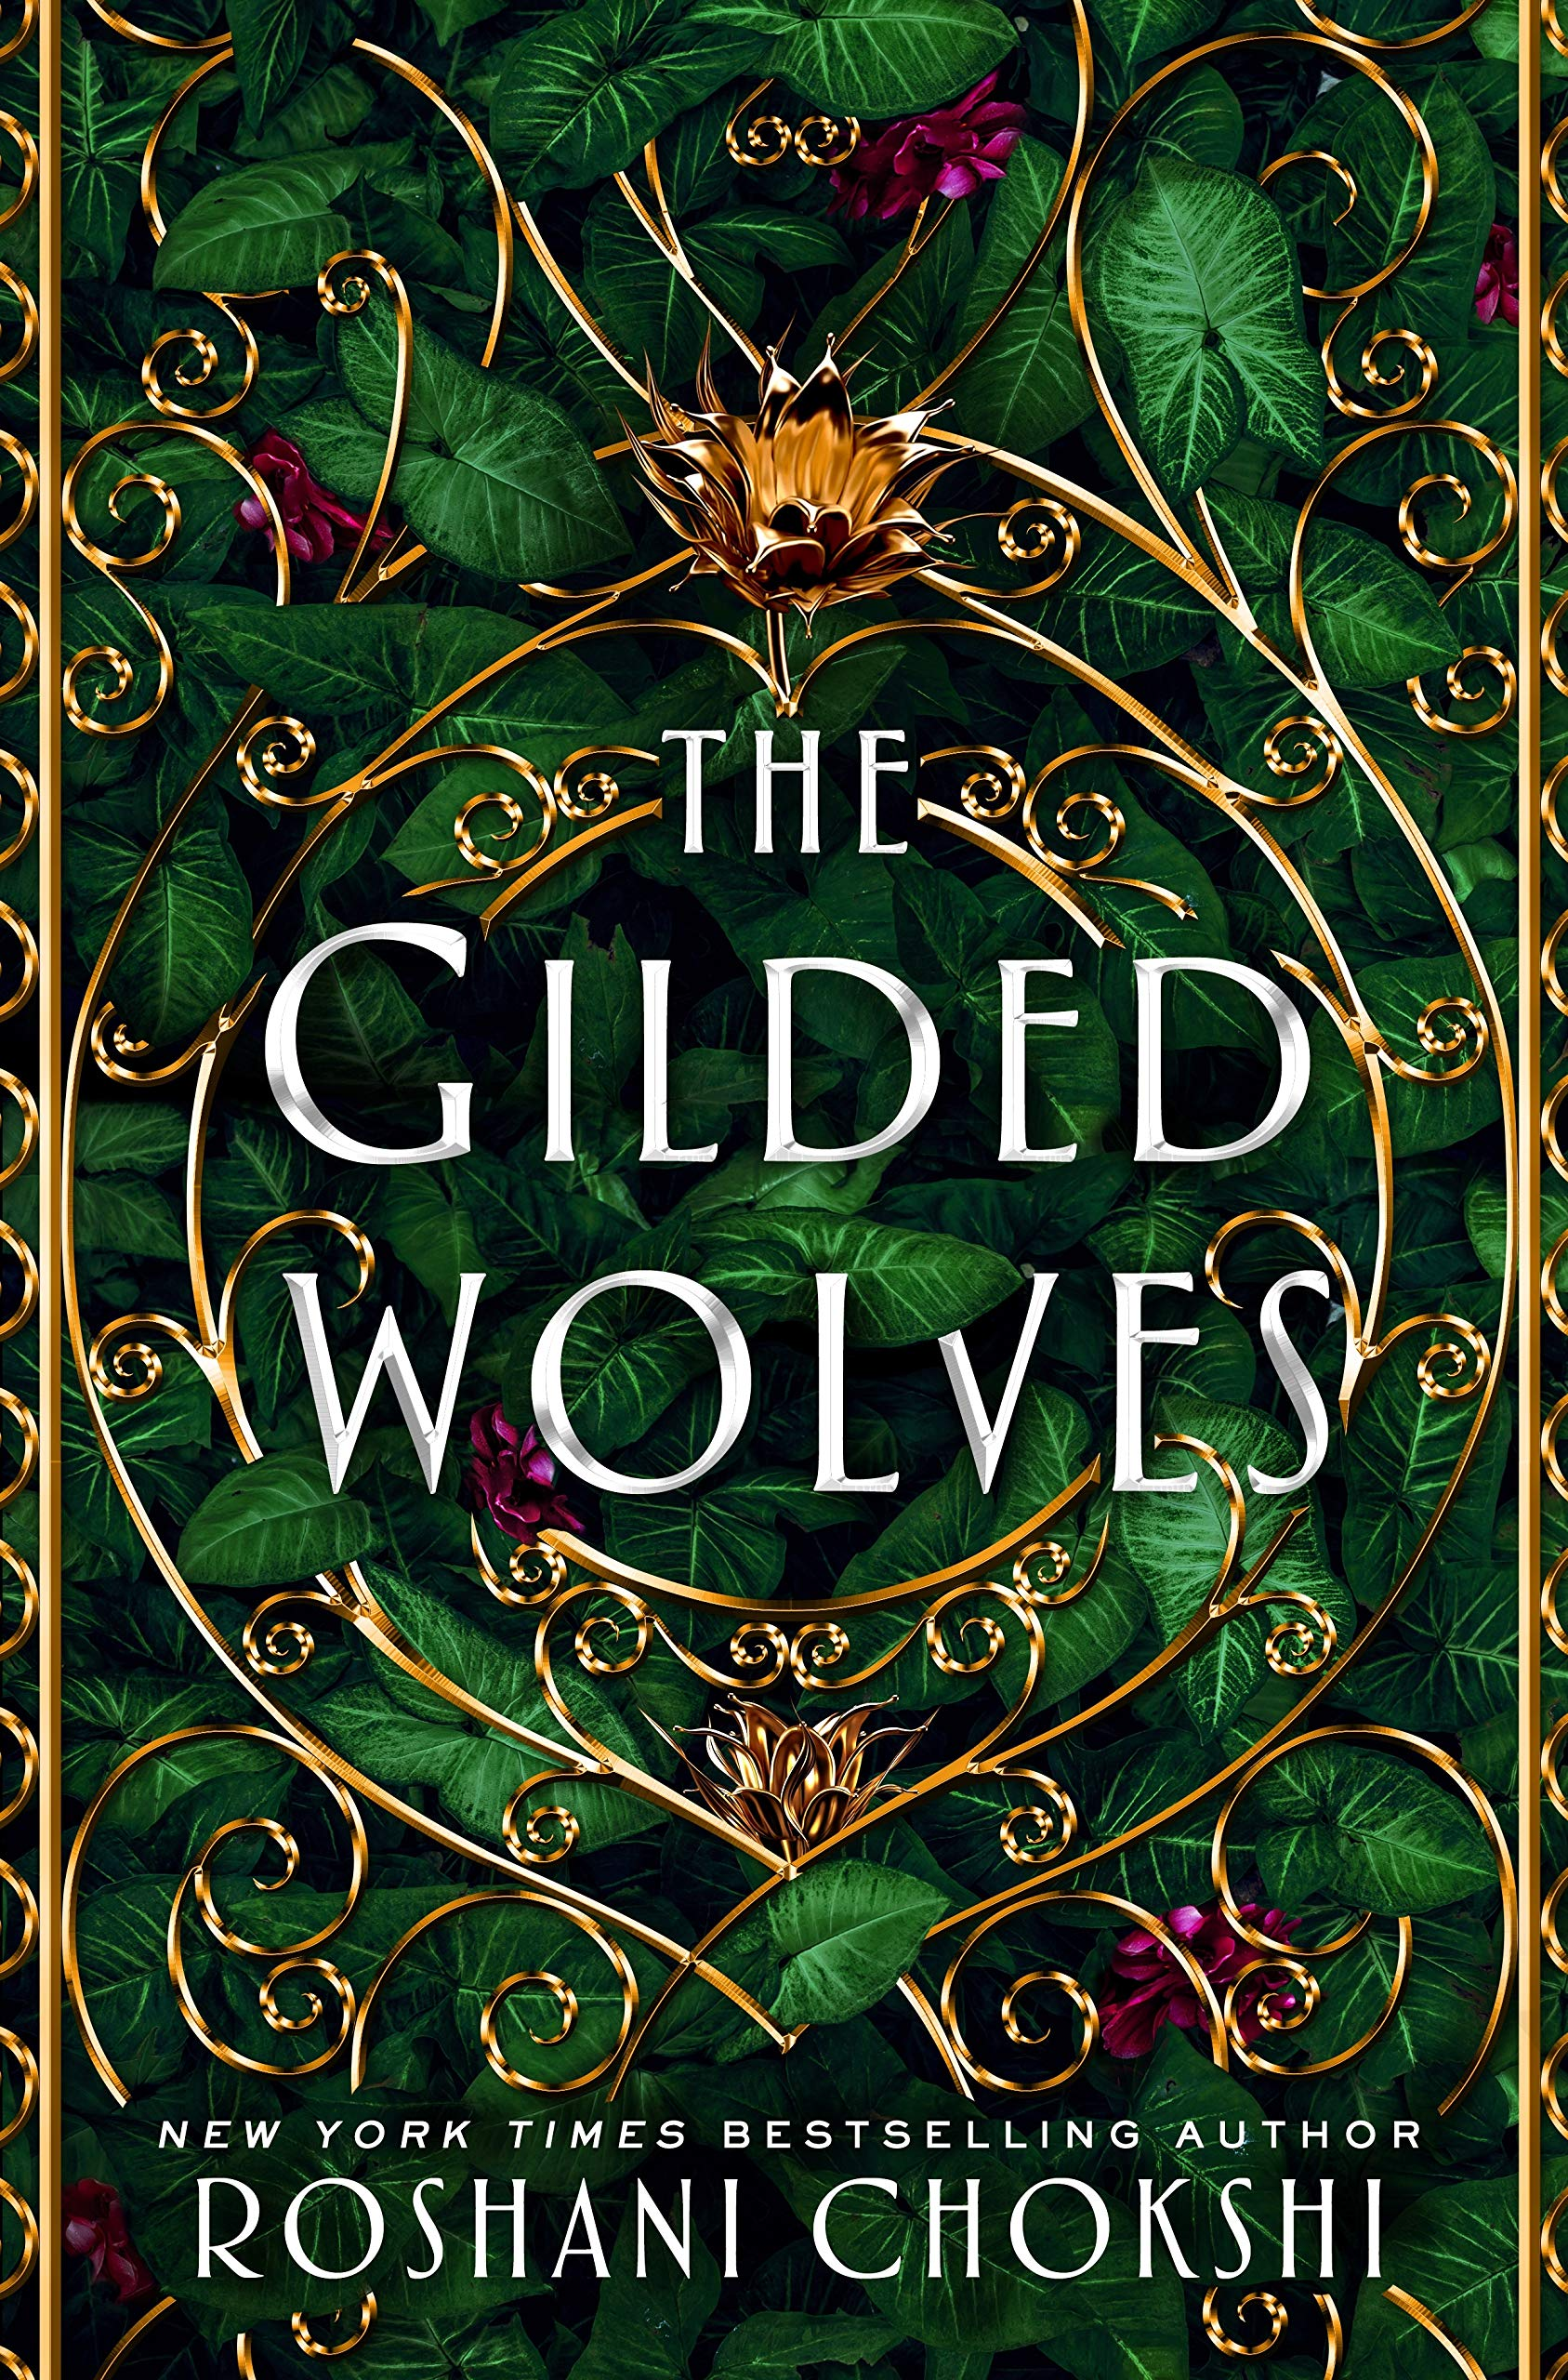 Image result for images The Gilded Wolves